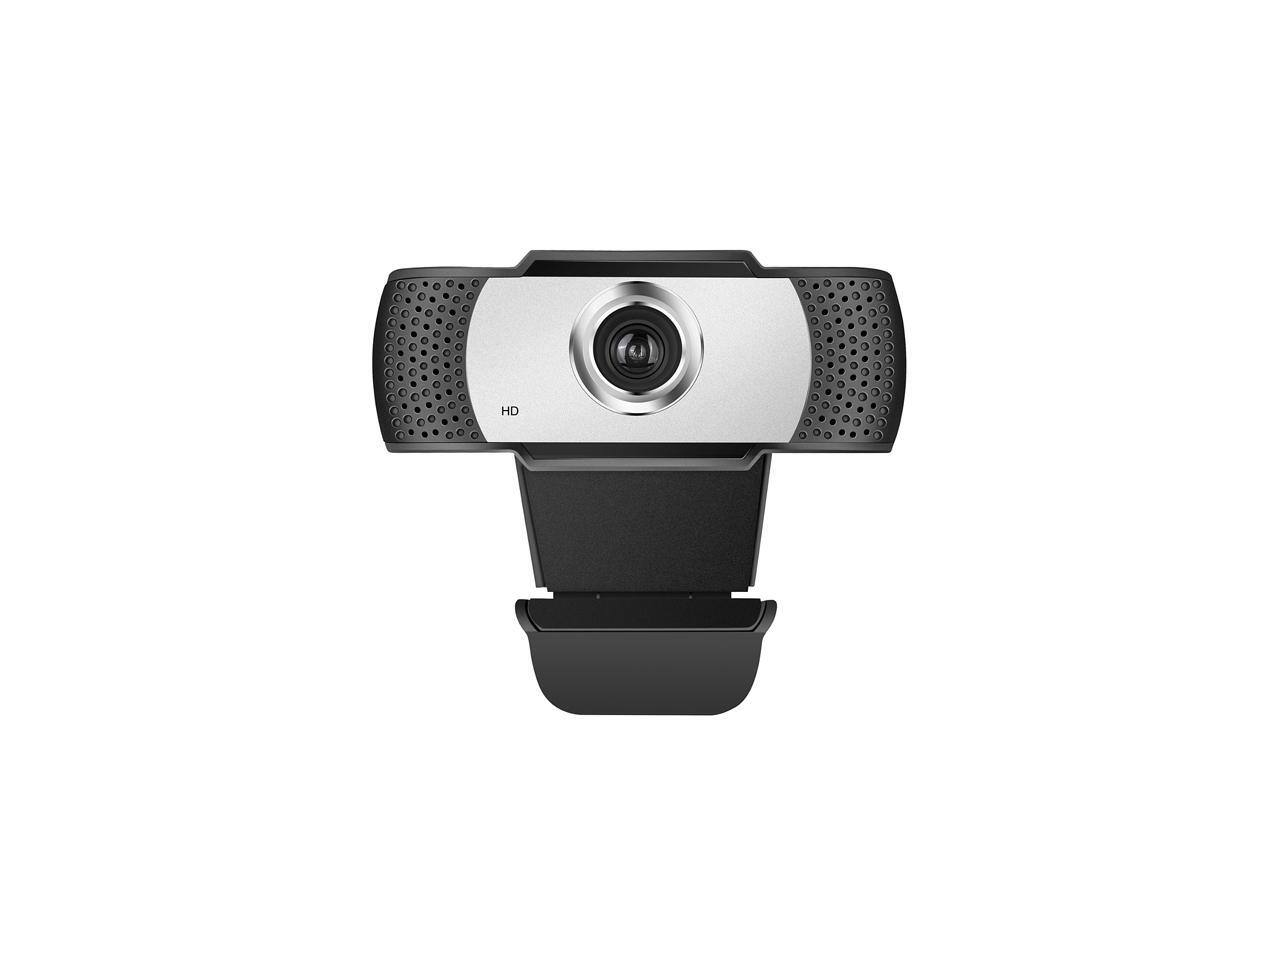 Webcam 1080P,Web Camera with Stereo Microphone for Meeting Vedio Calling-promote price $21.99 and extra 50%off,just need $11.00